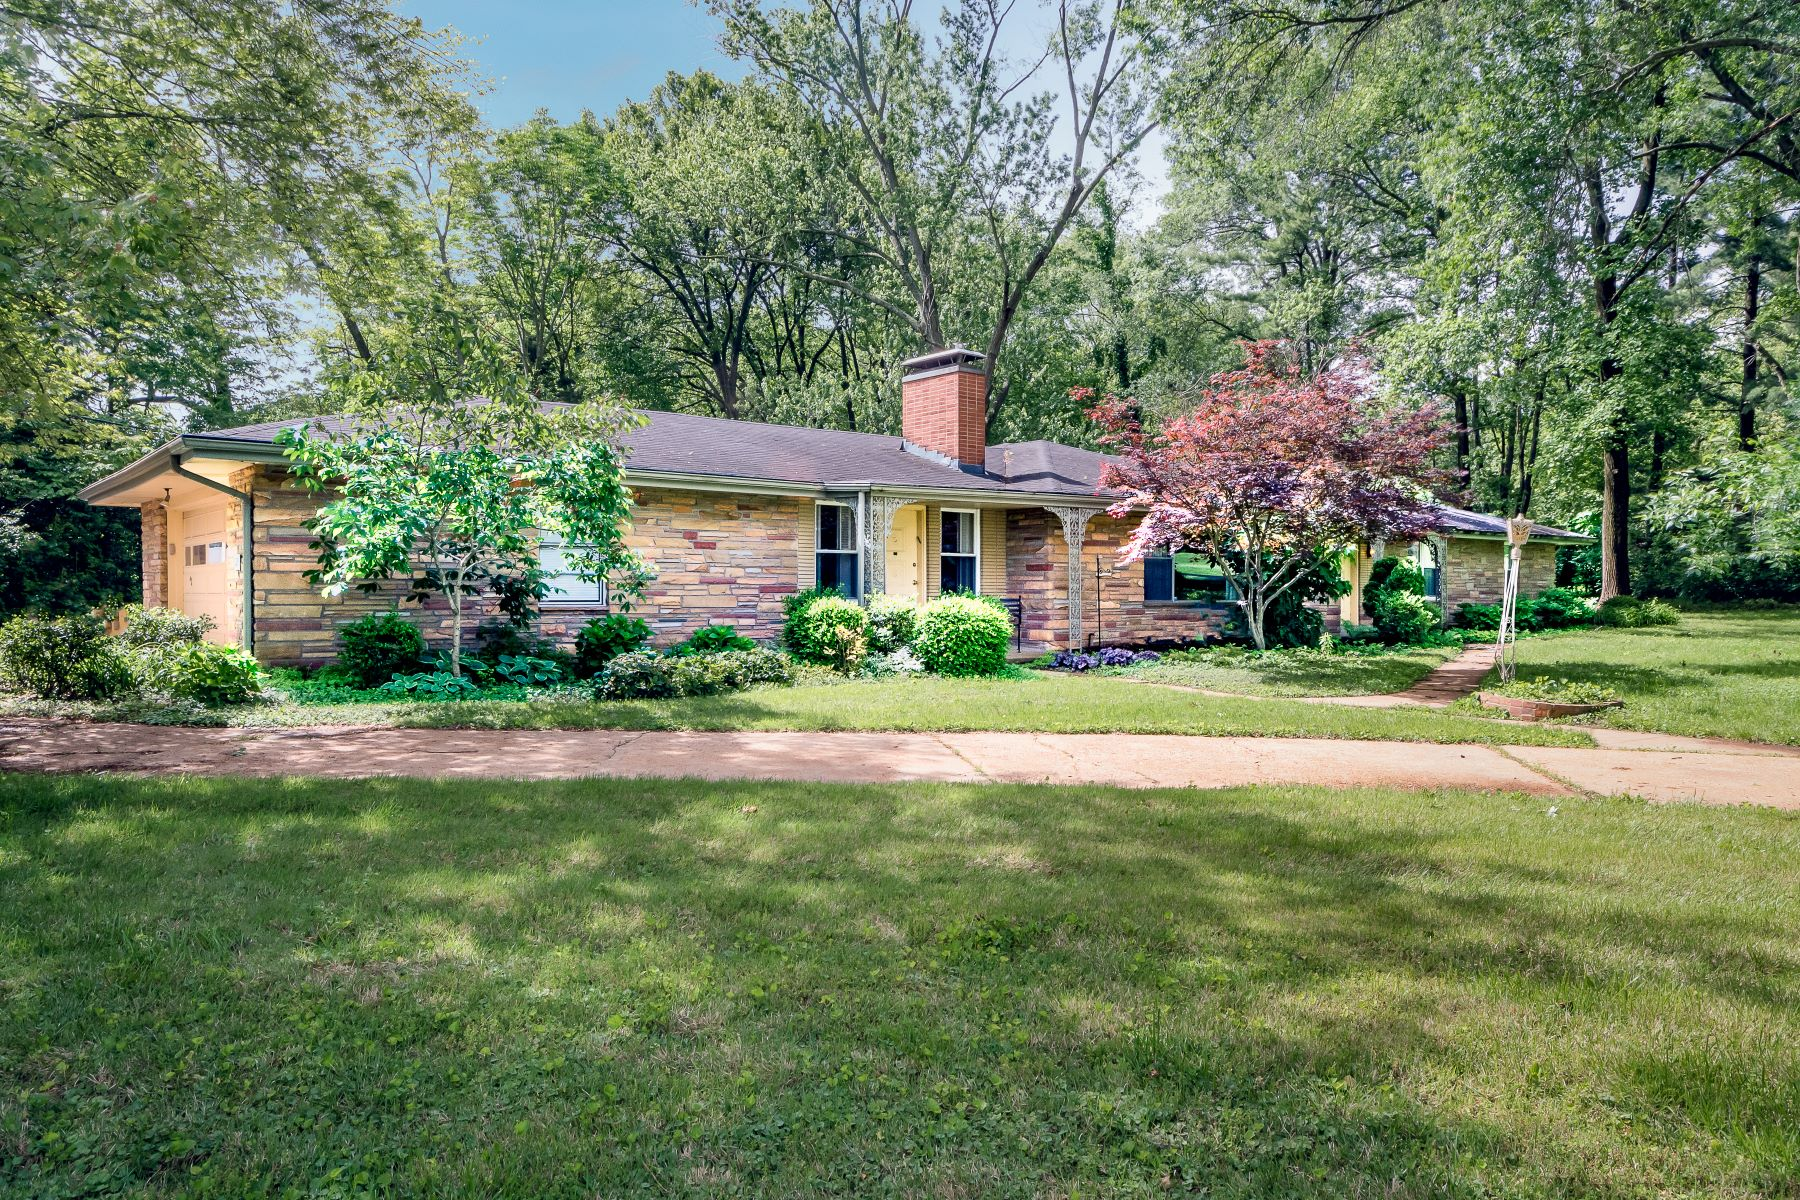 Property for Sale at Renovate or Build Your Future Dream Home 12 Westfield Lane St. Louis, Missouri 63131 United States